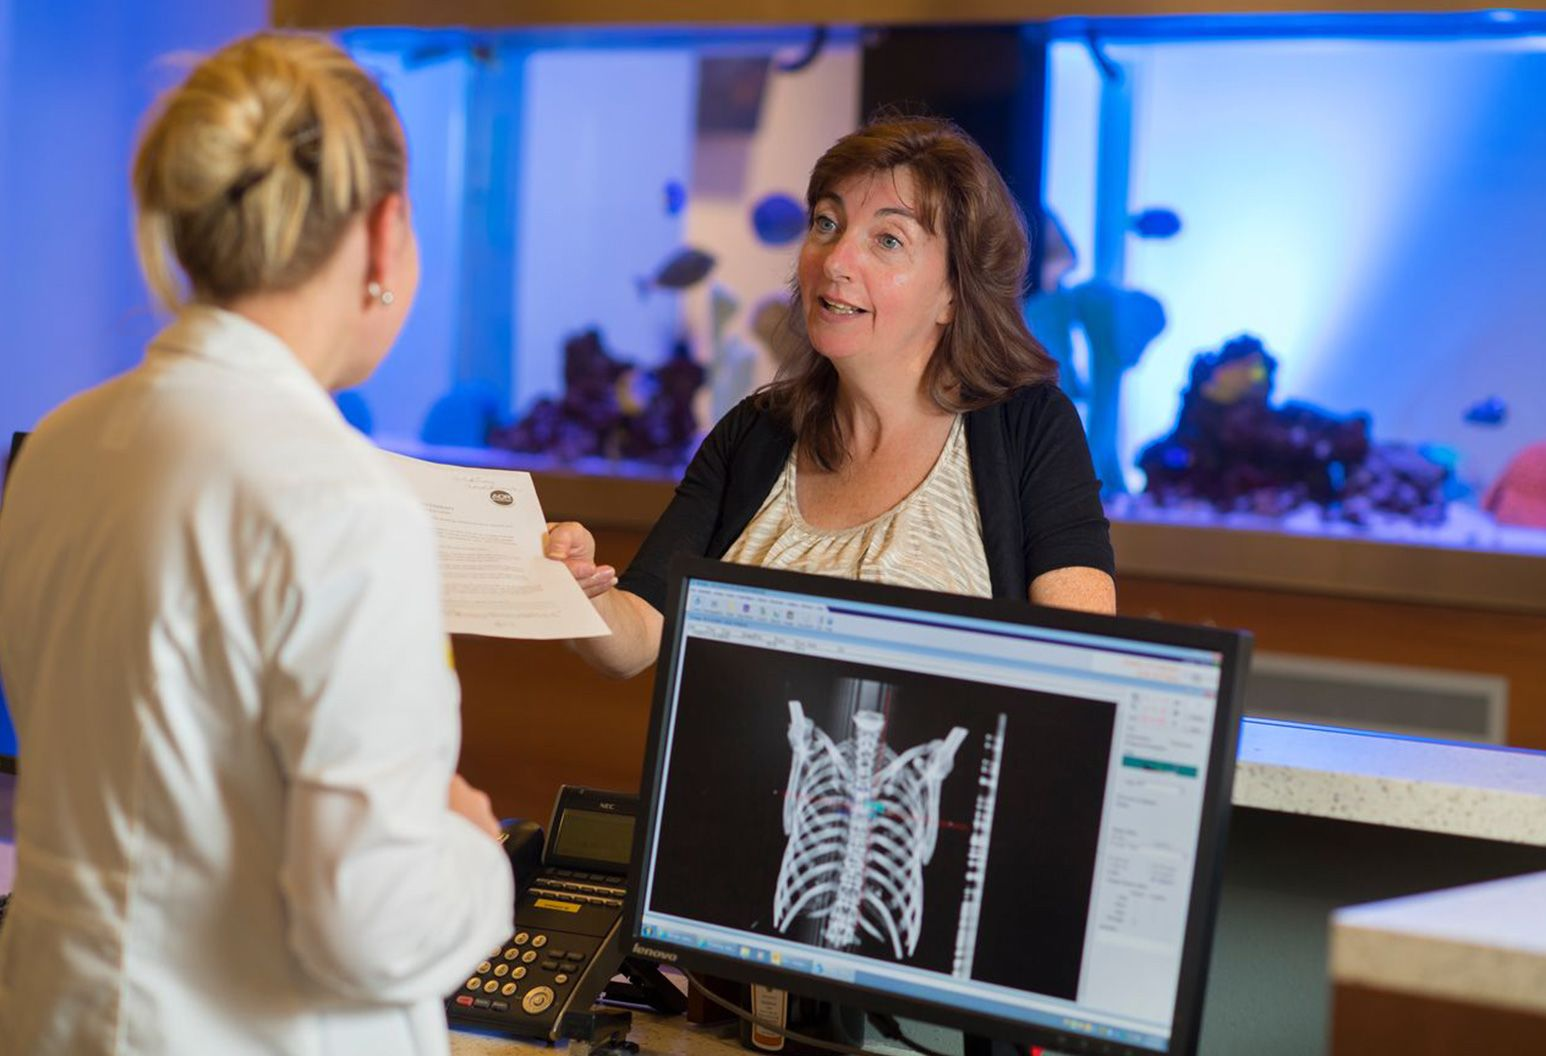 Female patient standing in front of a large fish tank hands paperwork to doctor wearing a white lab coat who is standing behind a reception desk. The computer monitor at the reception desk is displaying an image of the human skeleton